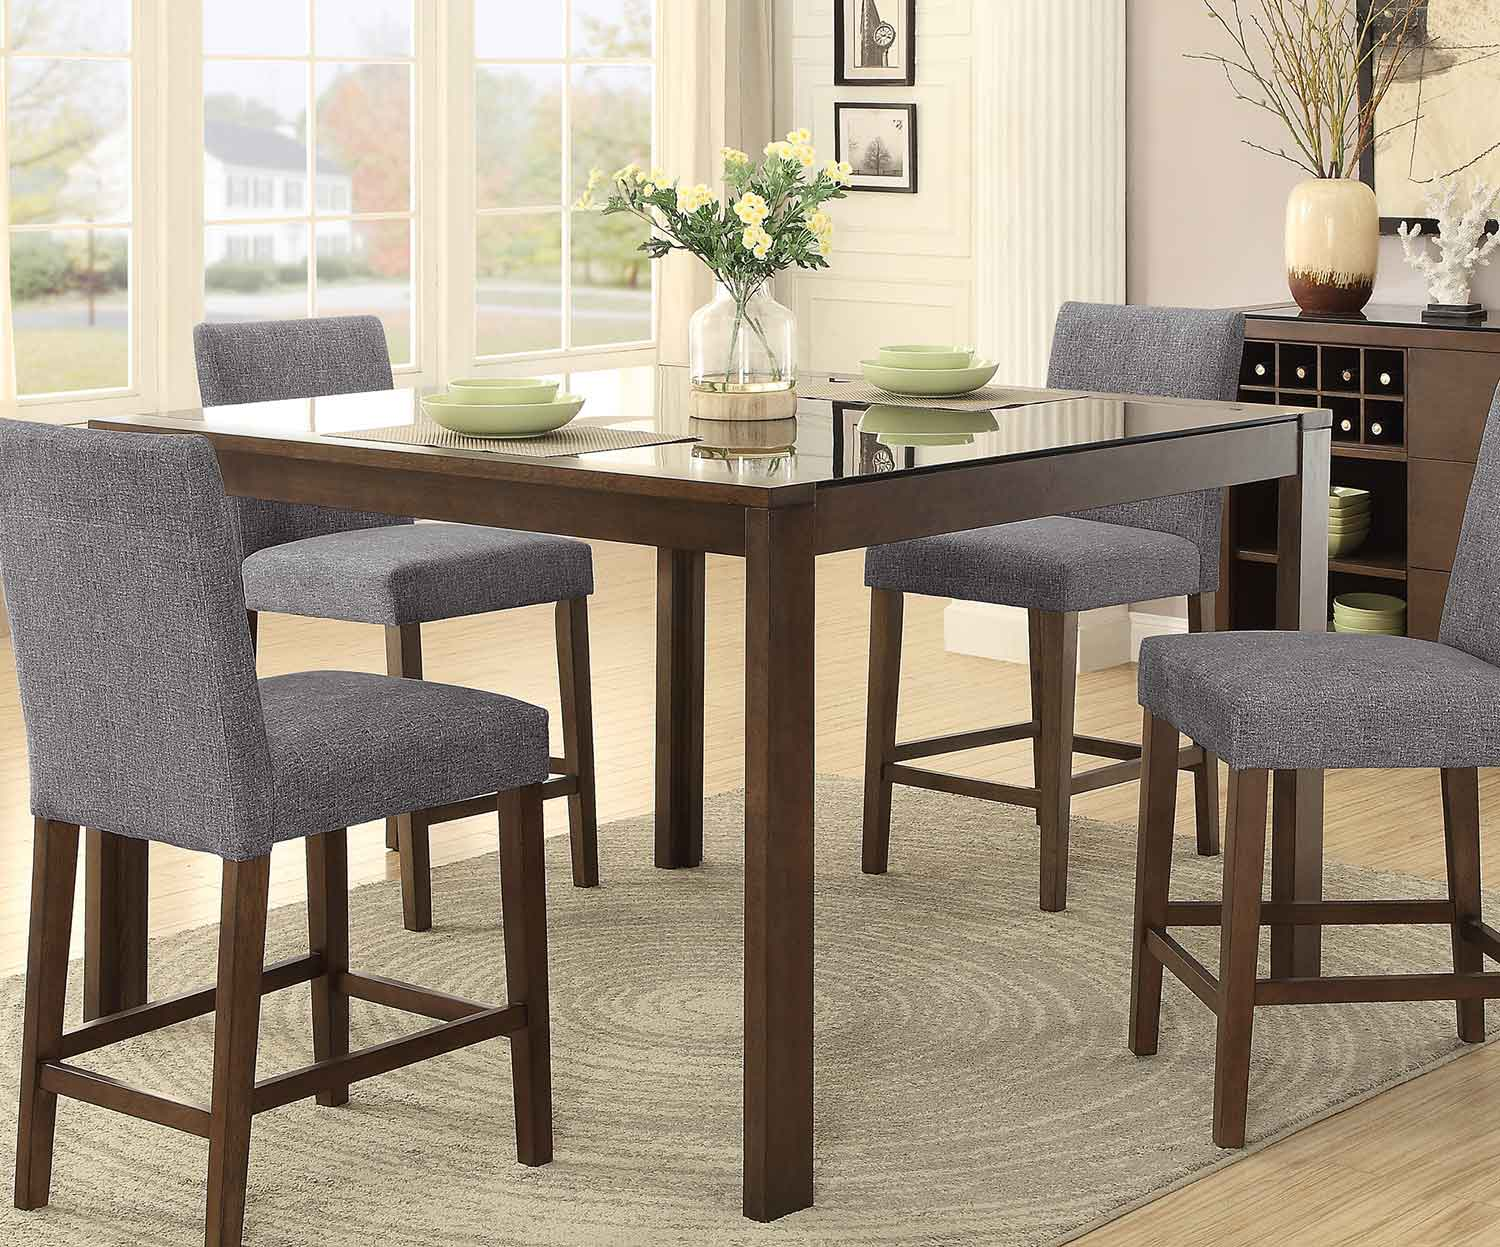 Homelegance Fielding Rectangular Counter Height Dining Table with Black Glass Insert - Brown